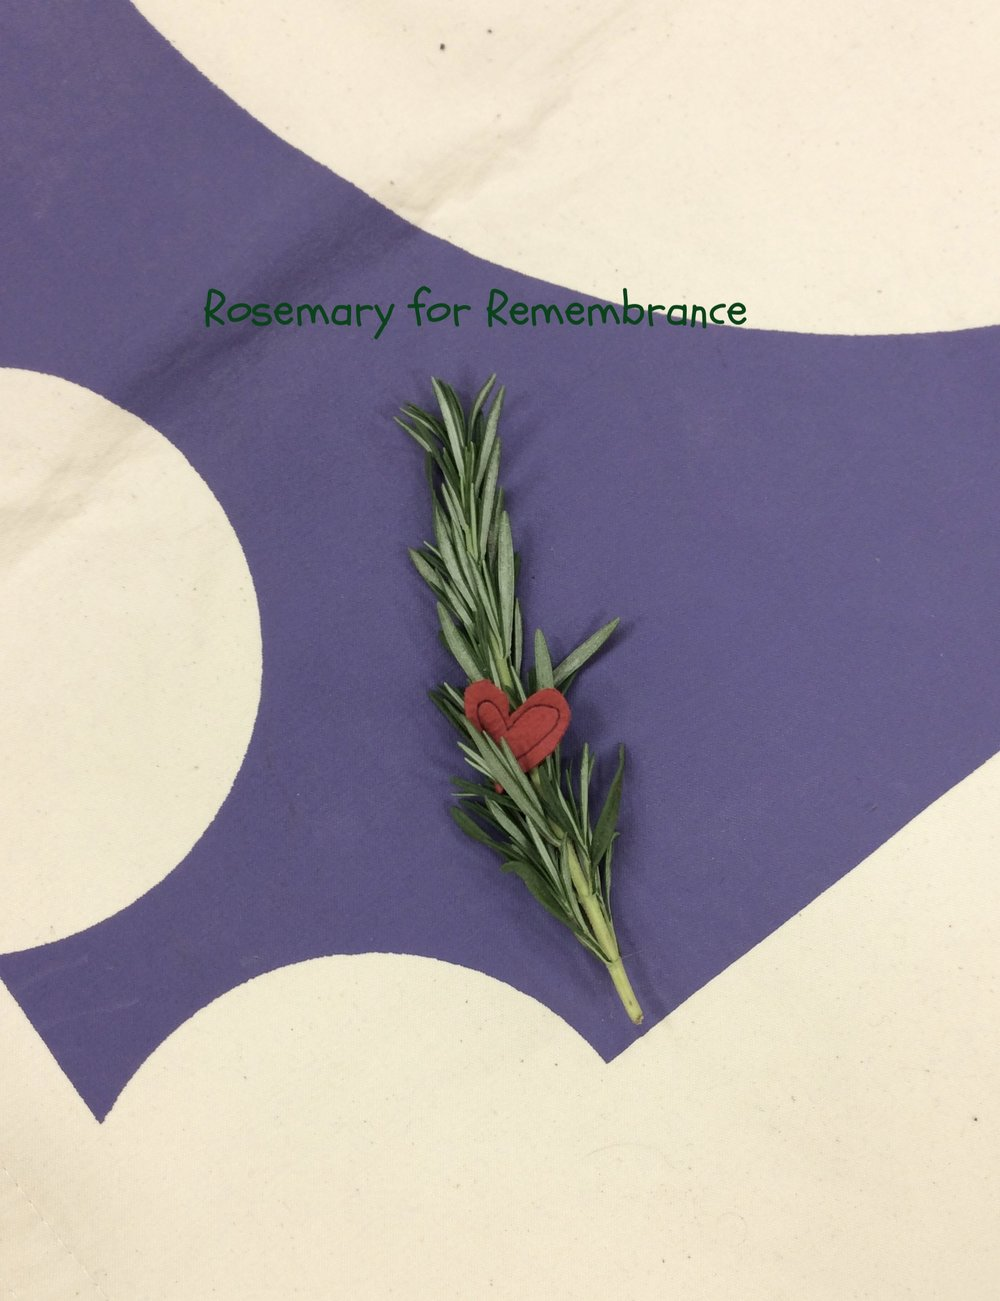 Rosemary for Remembrance.